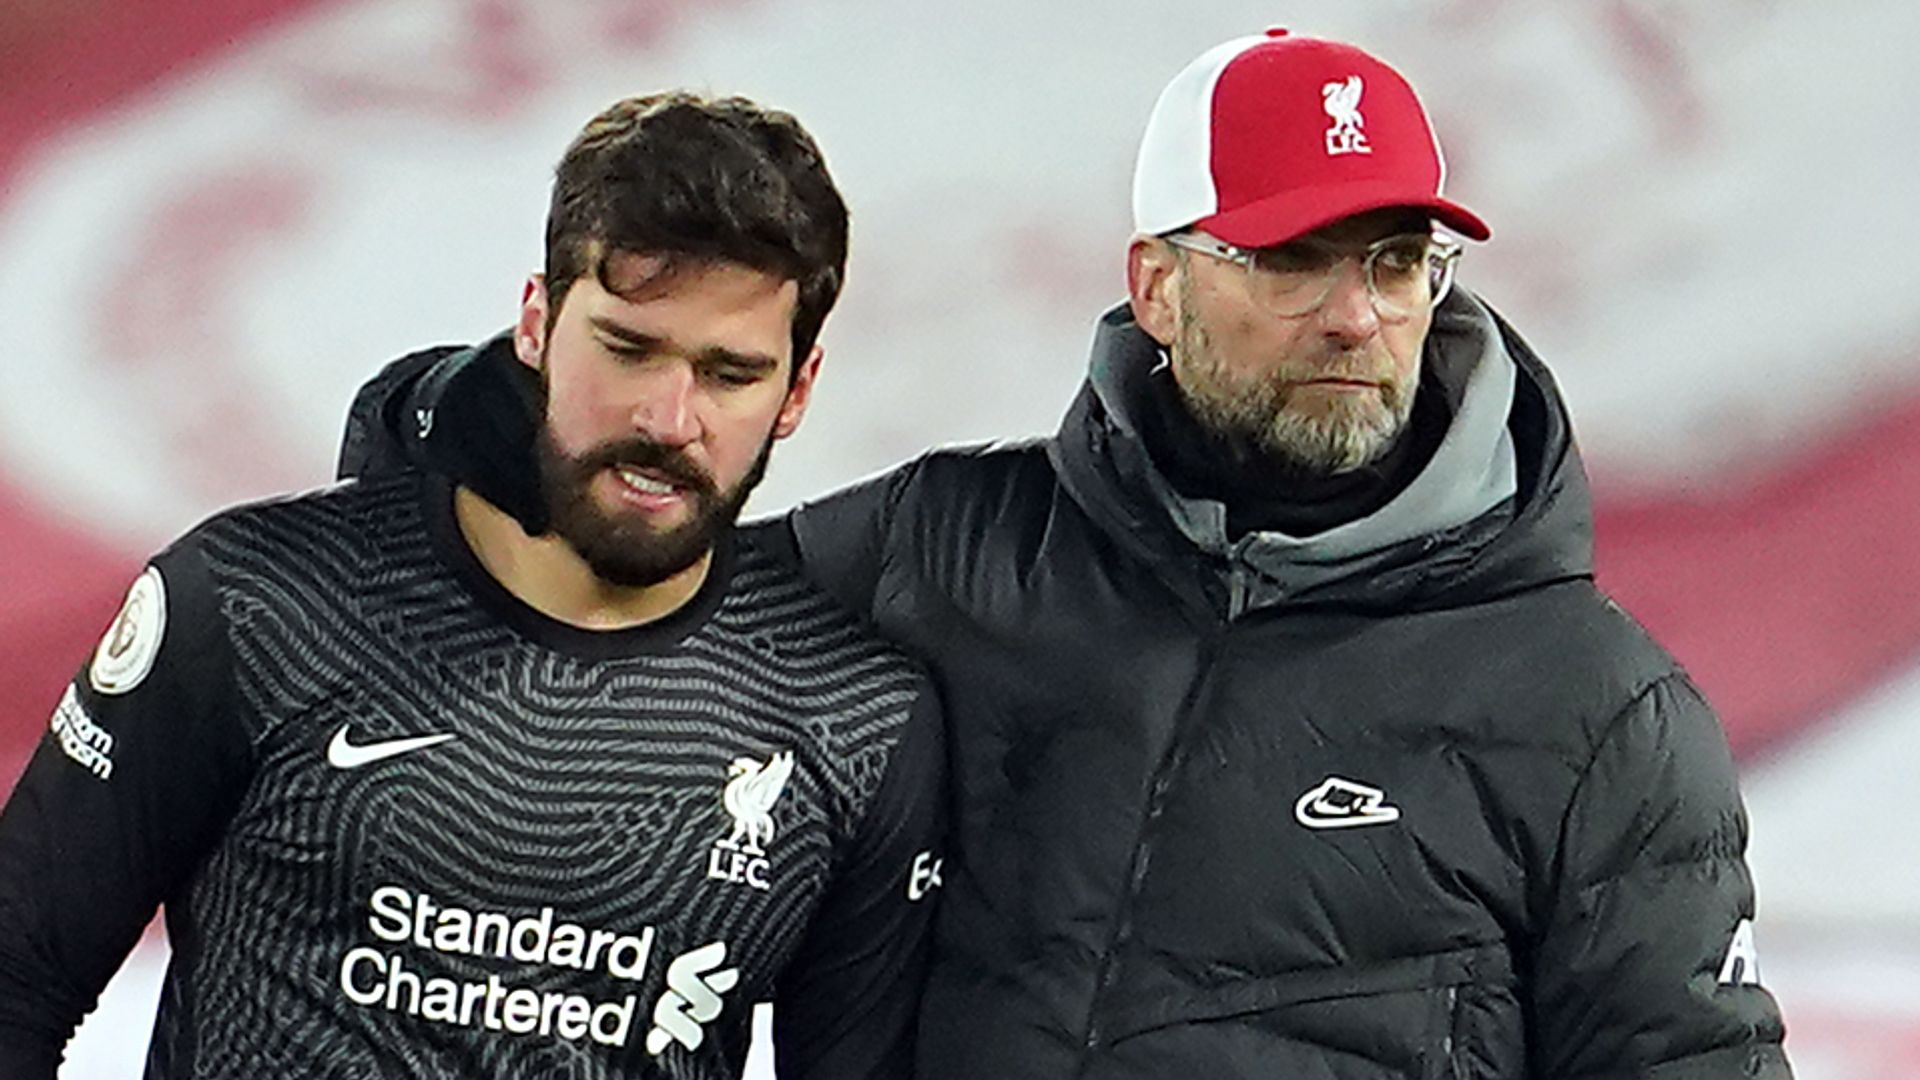 'It's my fault' - Klopp defends toothless Liverpool